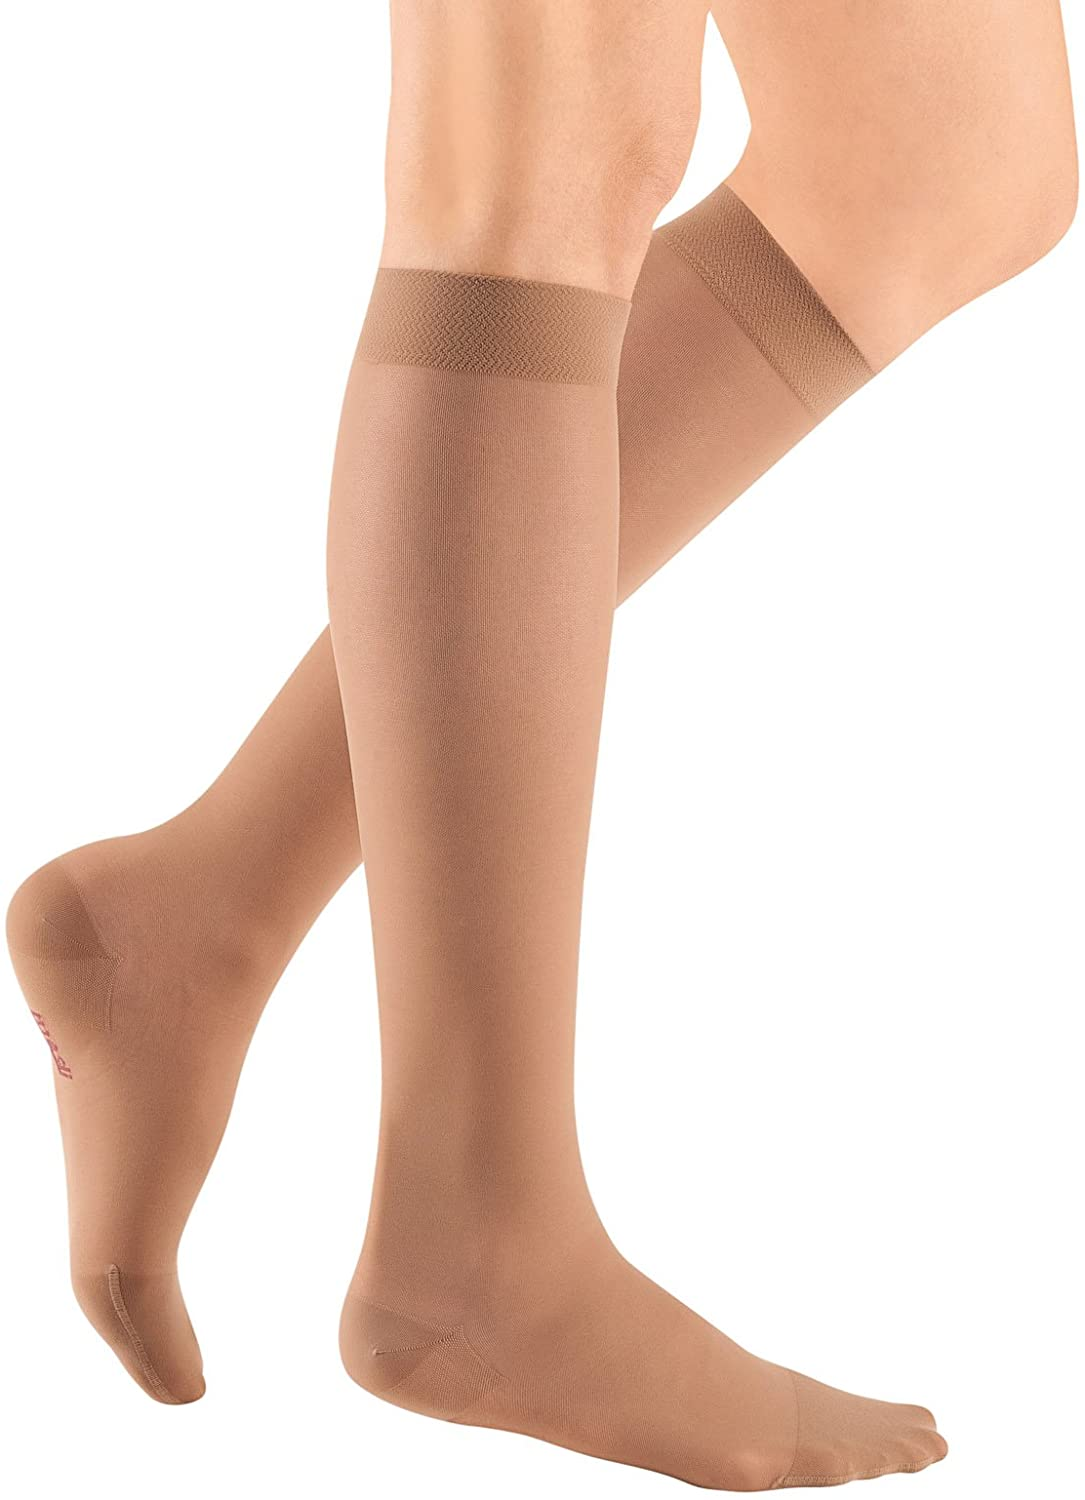 mediven Sheer & Soft, 30-40 mmHg, Calf High Compression Stockings, Closed Toe